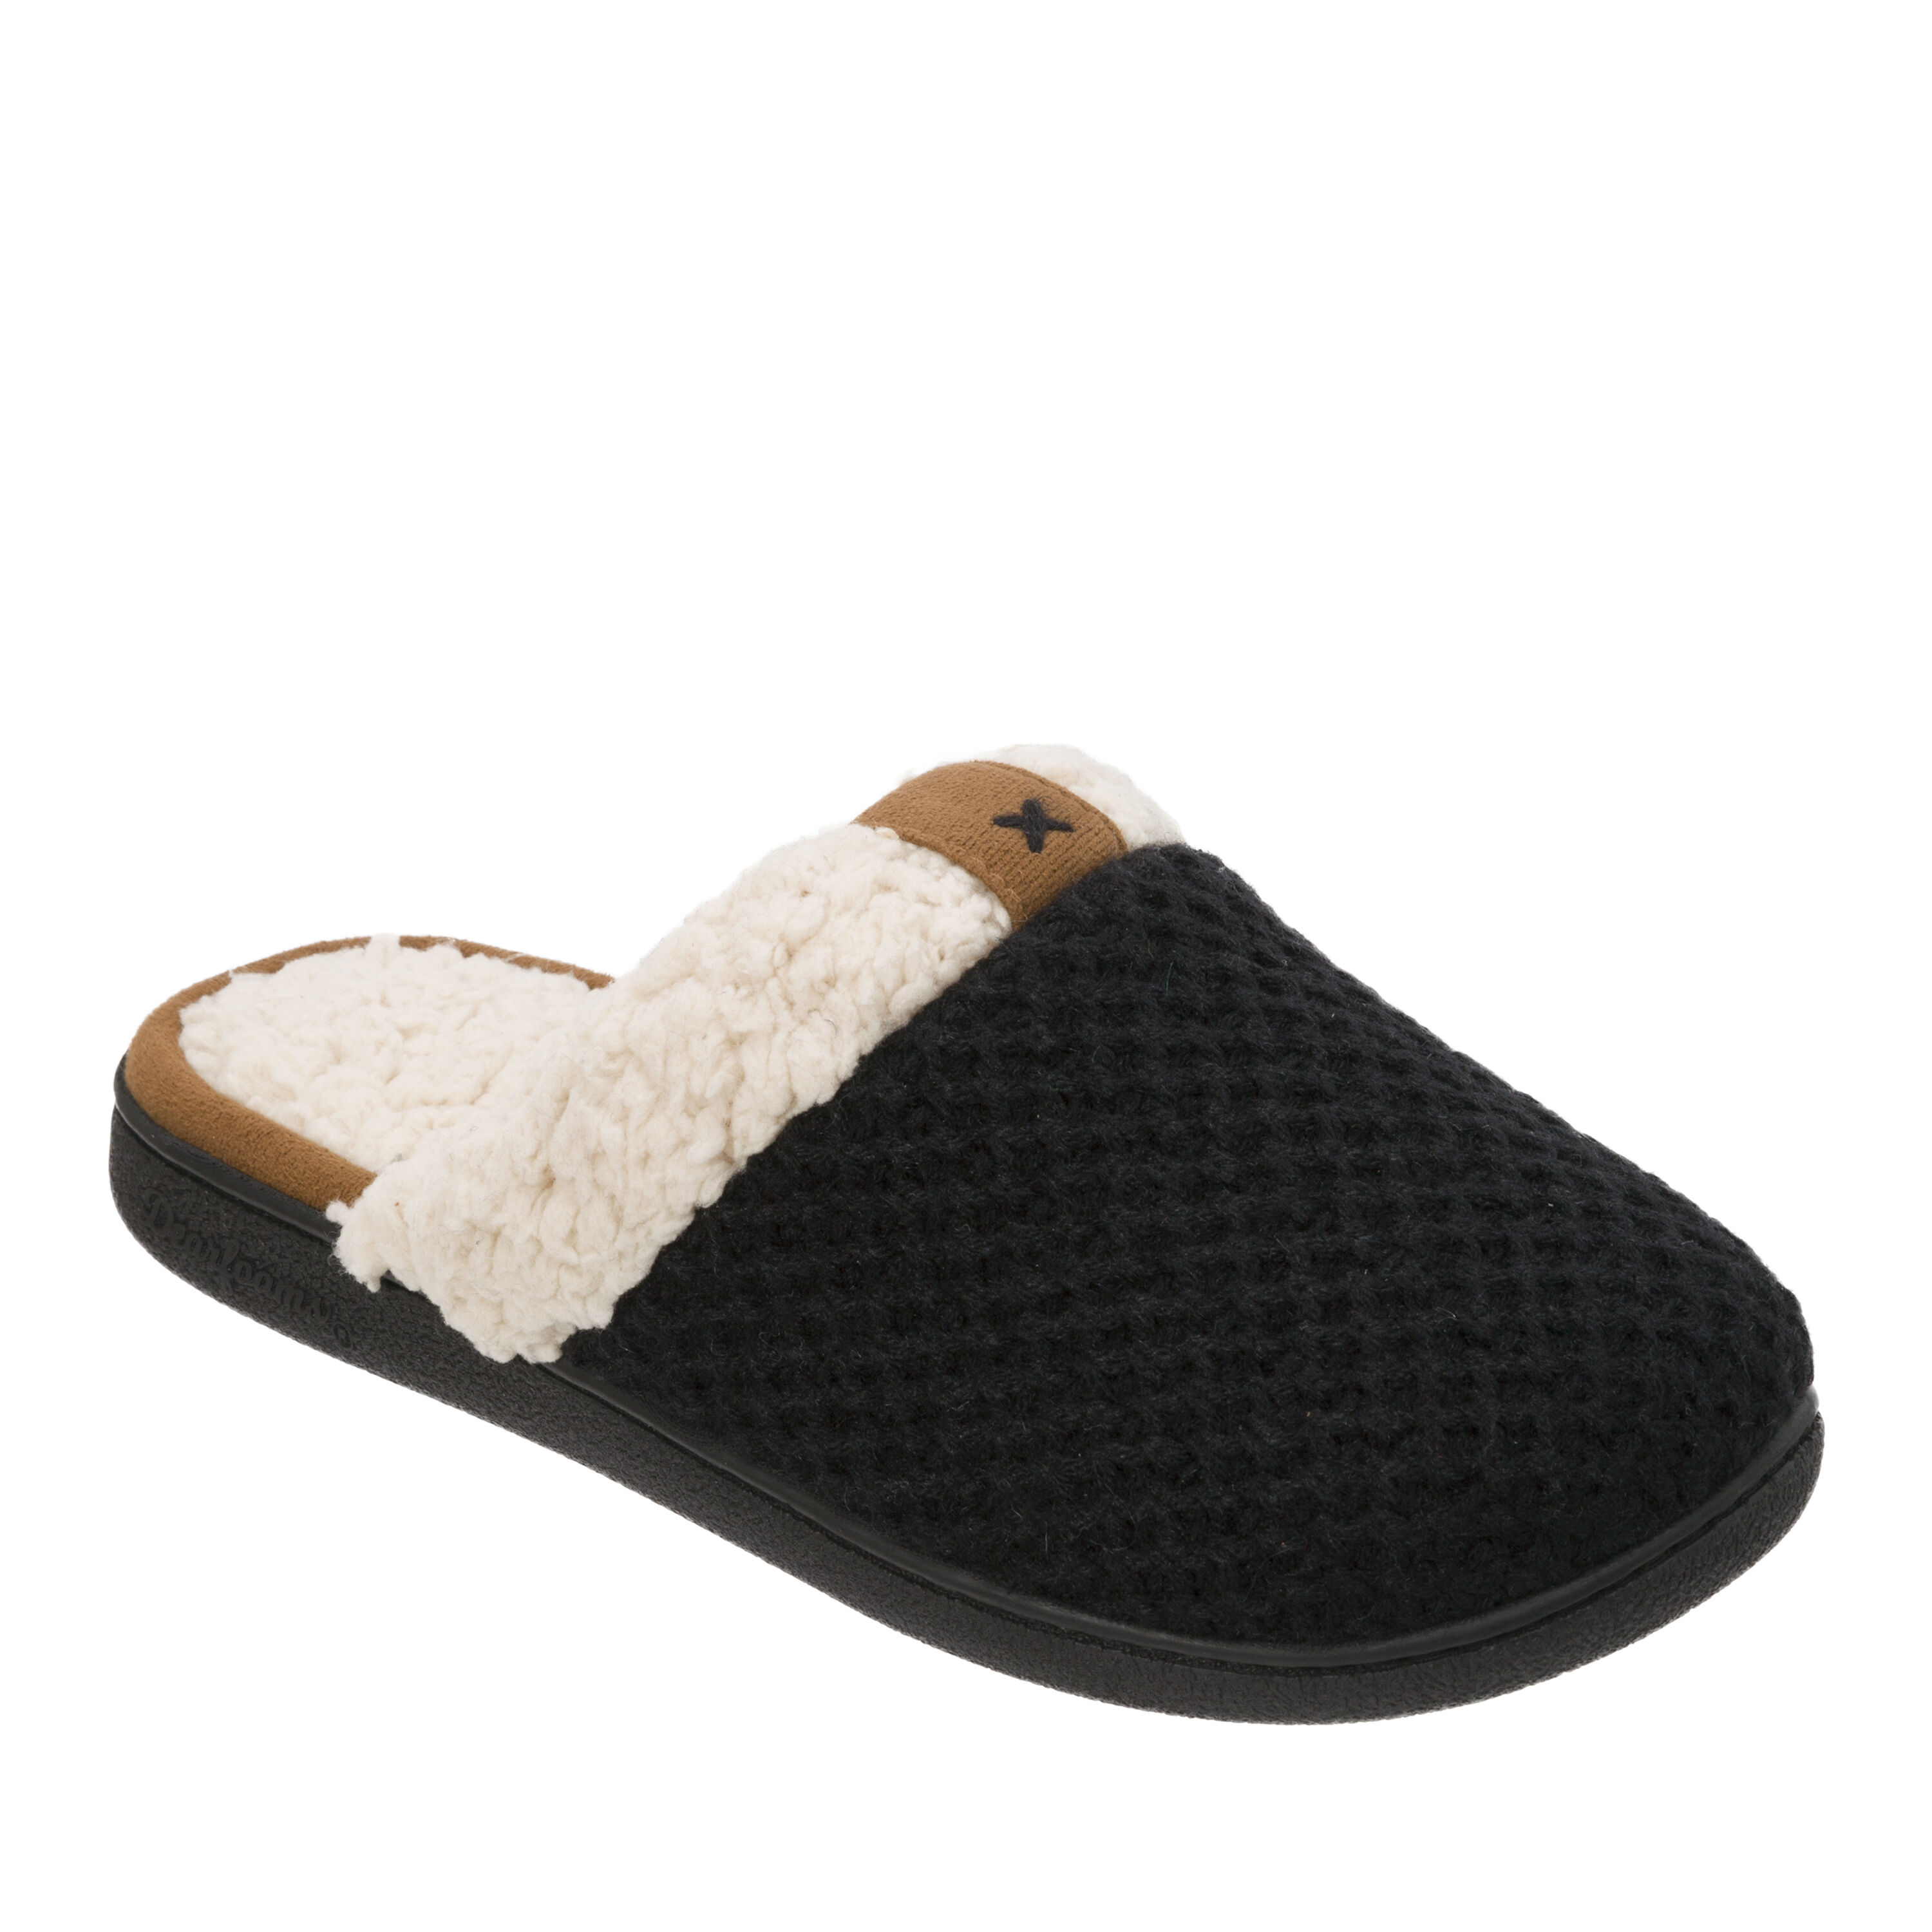 fake cheap price Women's Dearfoams Textured ... Knit Closed Toe Scuff Slippers cheap 100% guaranteed stockist online clearance websites LfTEZ